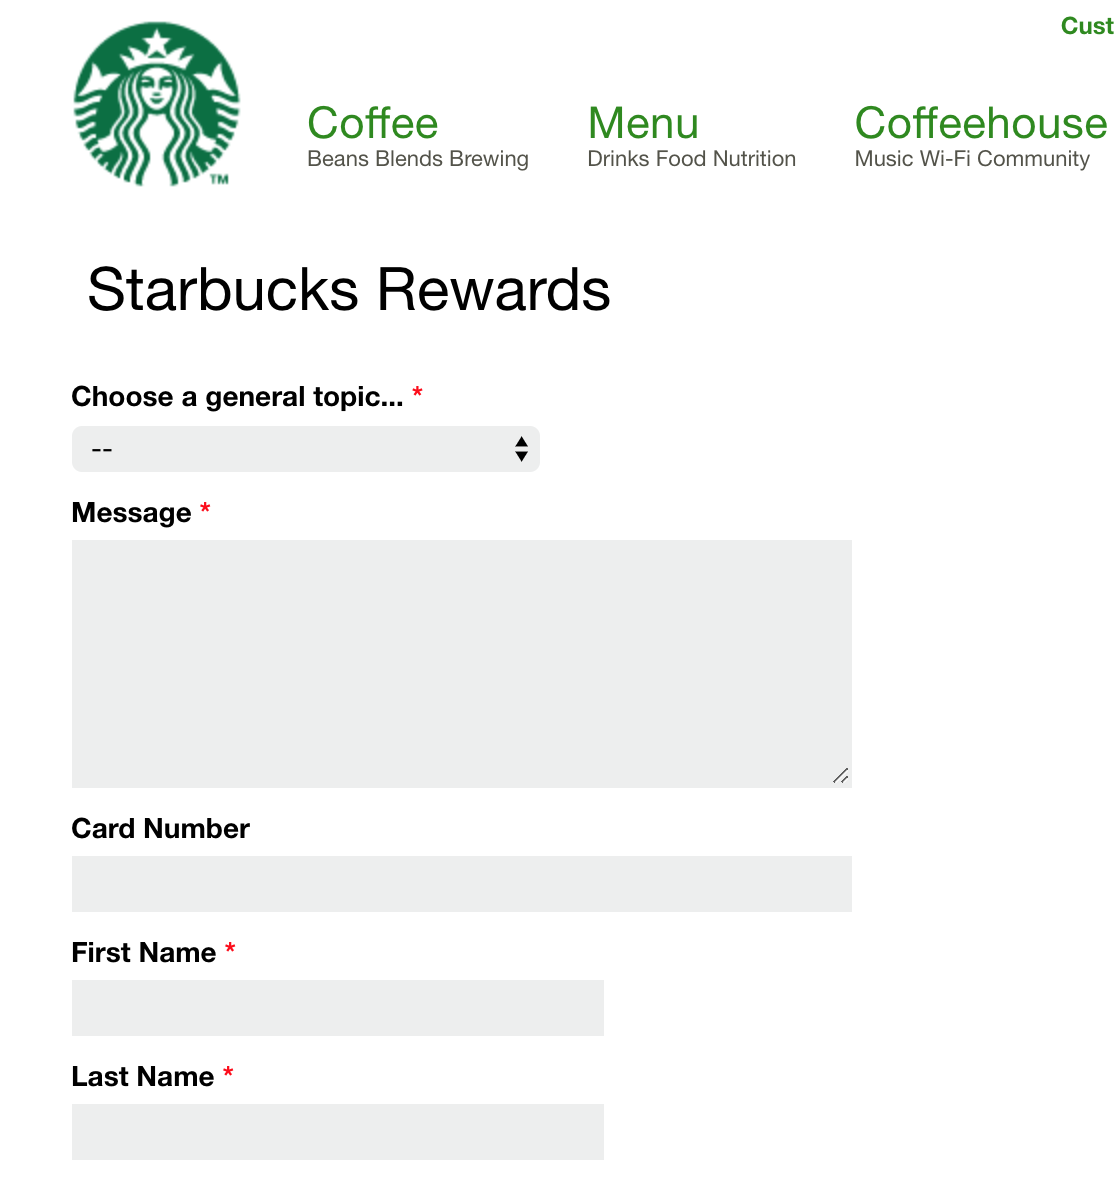 Screenshot of a contact form on the Starbucks website that has separate fields for First Name and Last Name